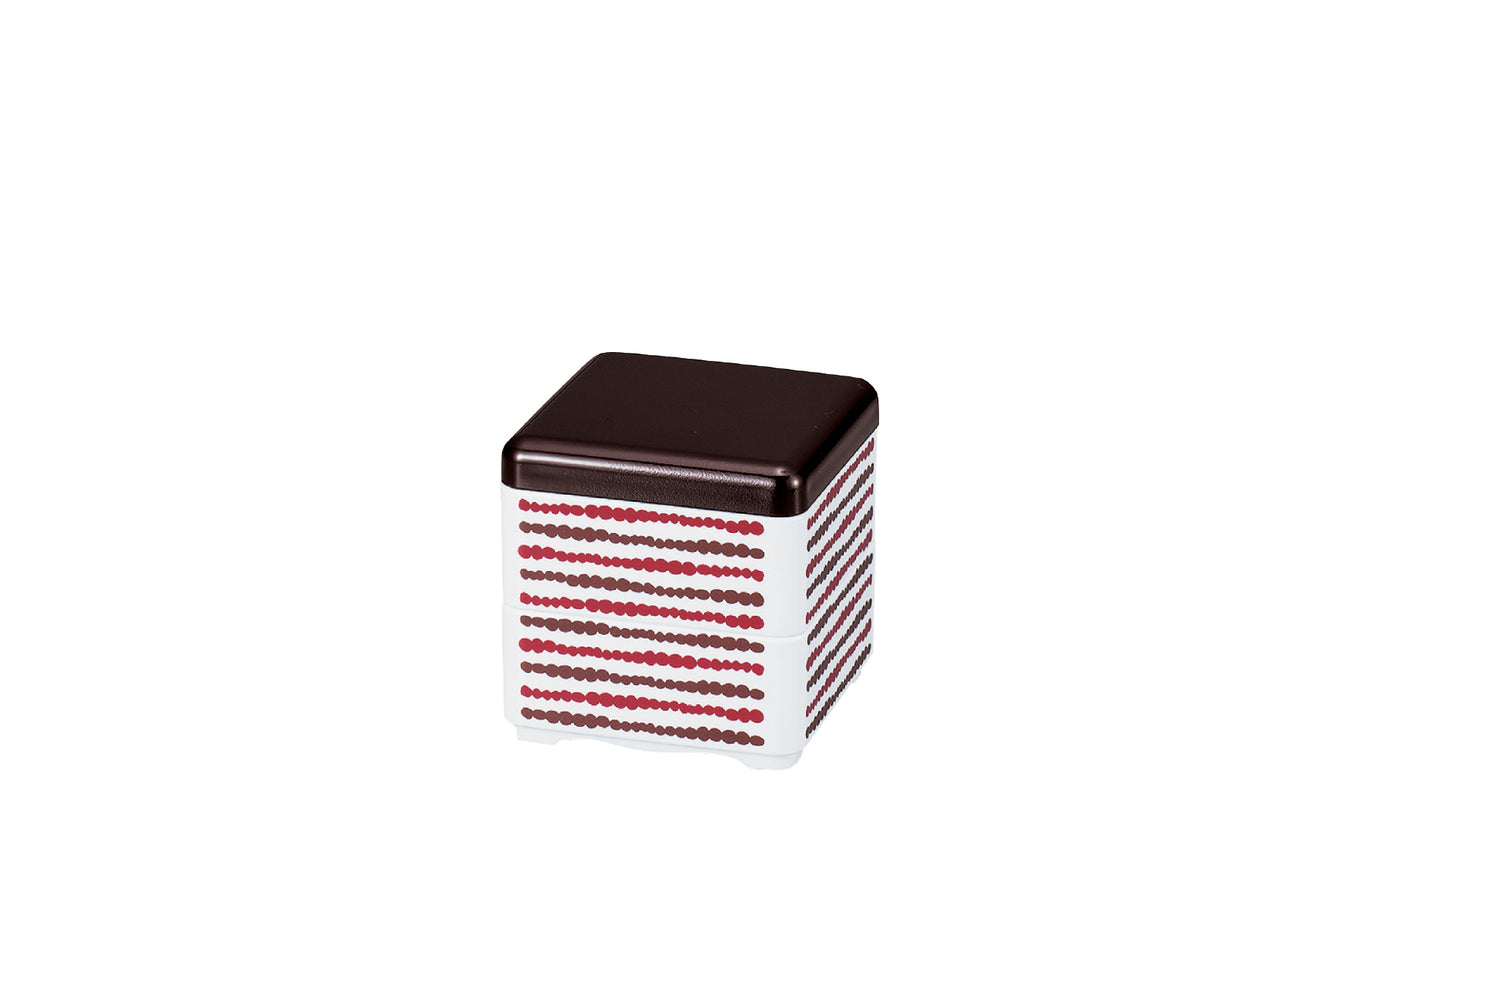 Mini Bento Box | Dot Stripes Red and Brown